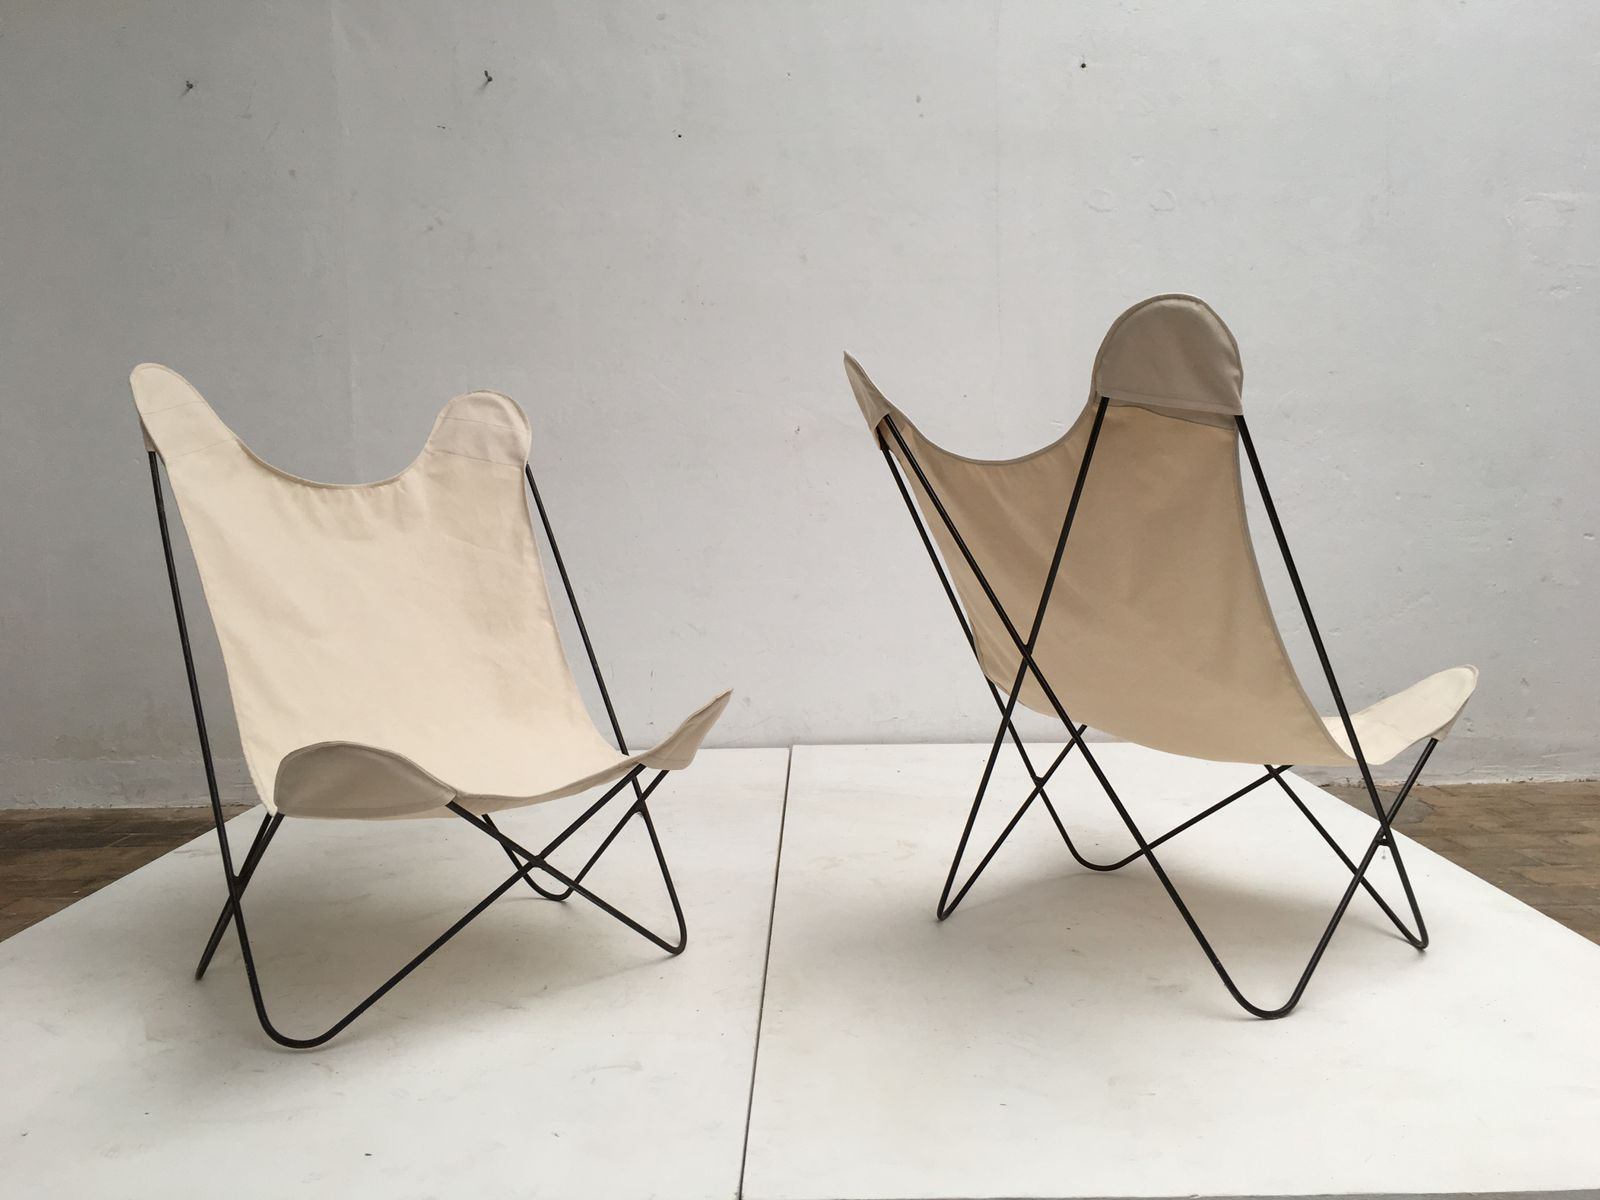 Butterfly chairs - Butterfly Chairs With Canvas Seats By Jorge Ferrari Hardoy 1960s Set Of 2